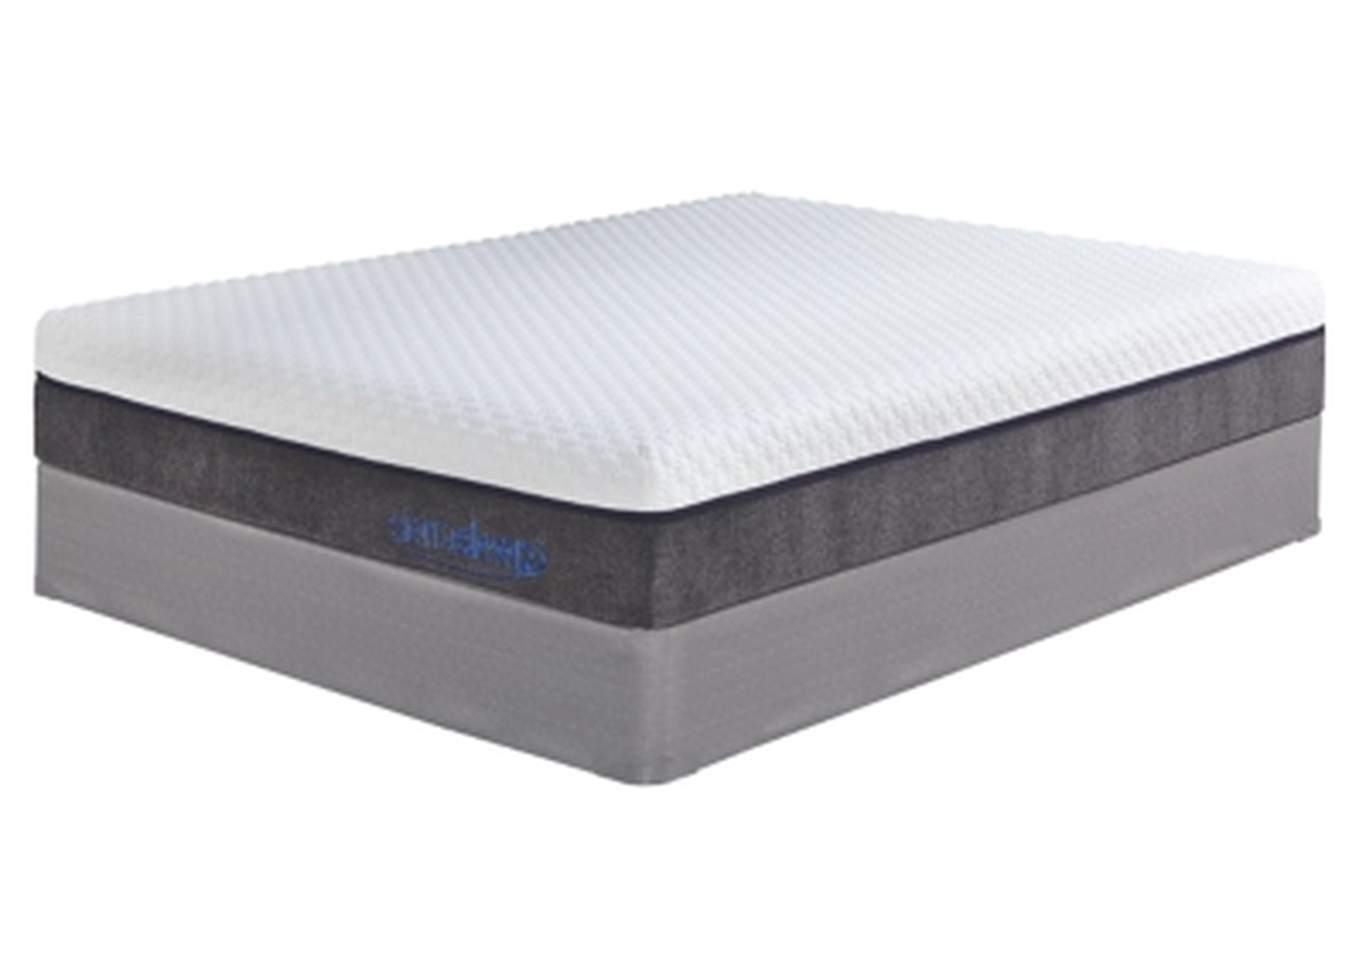 Mygel Hybrid 1100 White Full Mattress,Sierra Sleep by Ashley